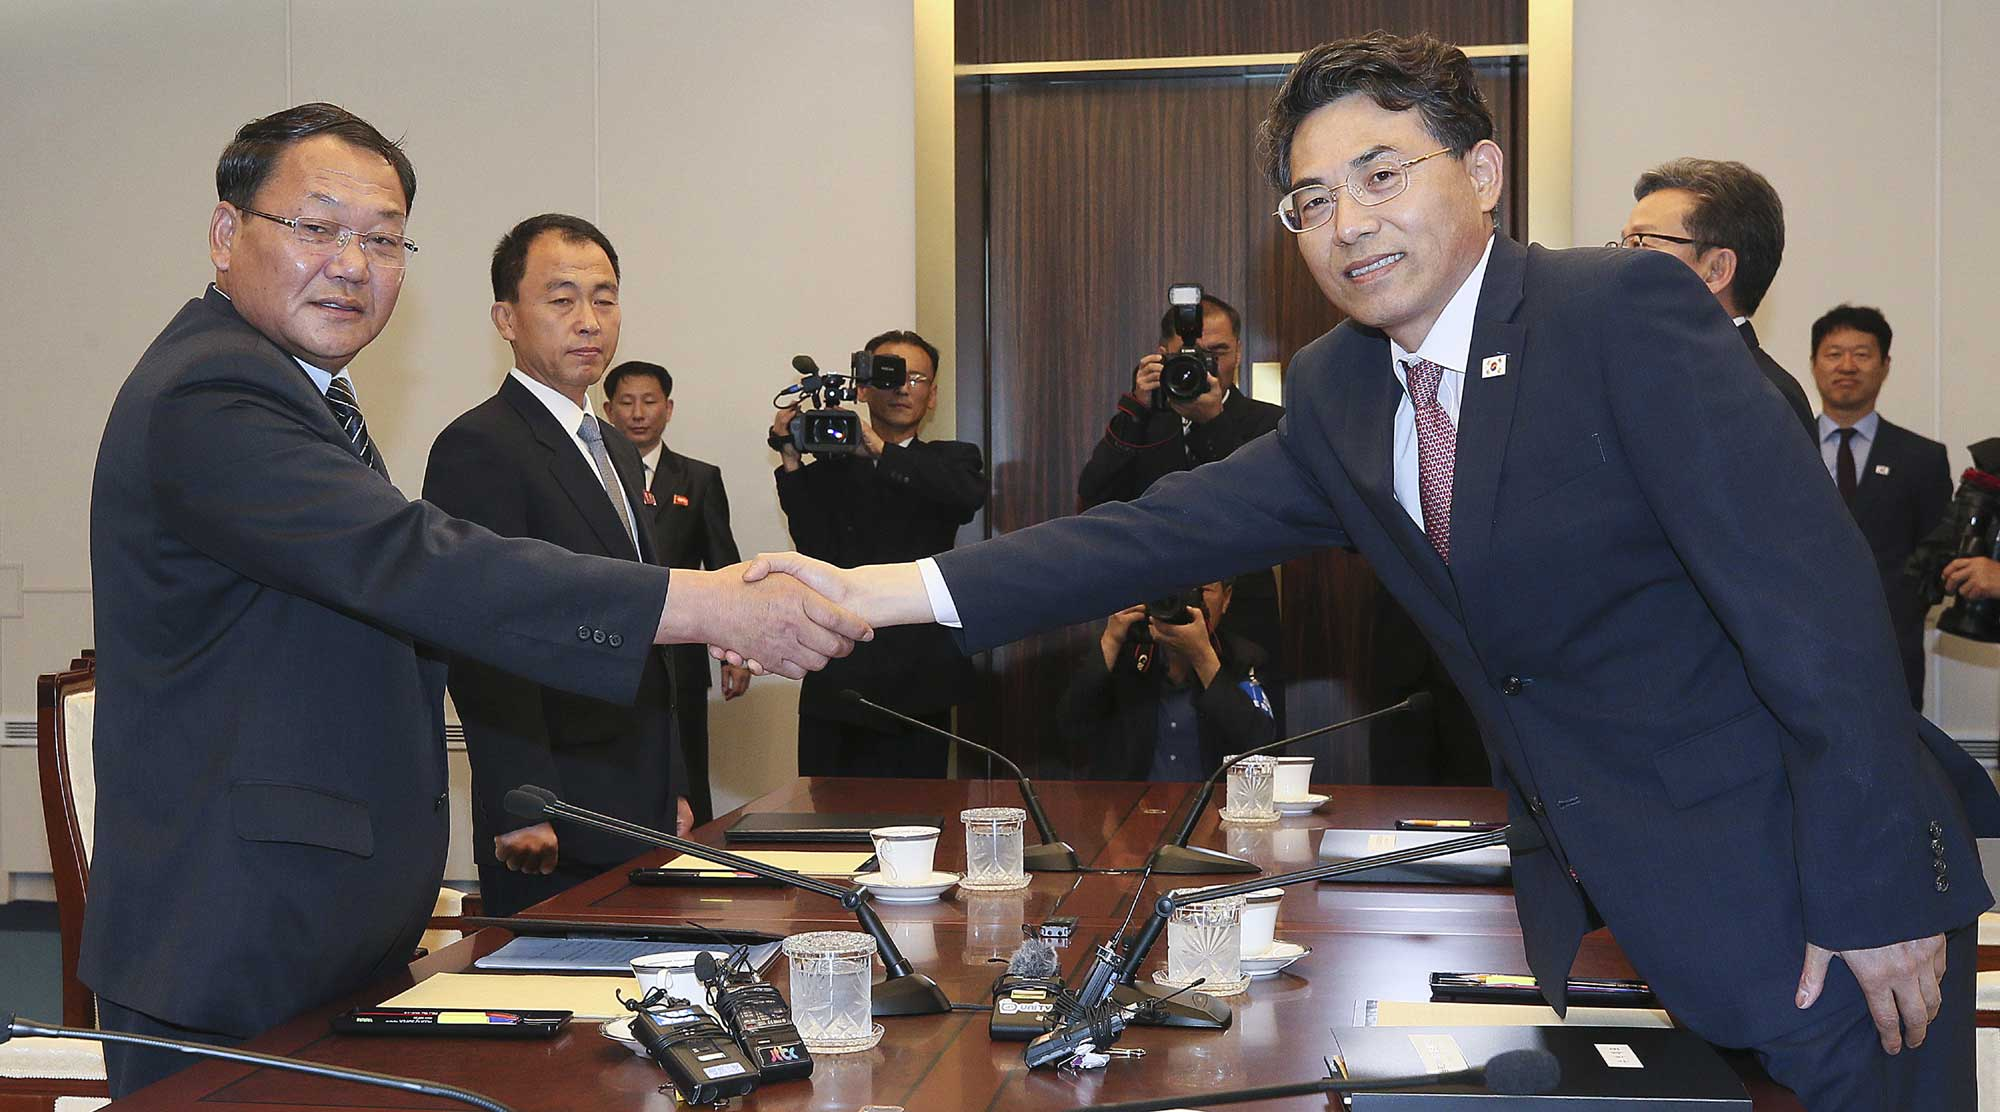 S. Korea, DPRK agree to conduct joint study on connecting railways over border